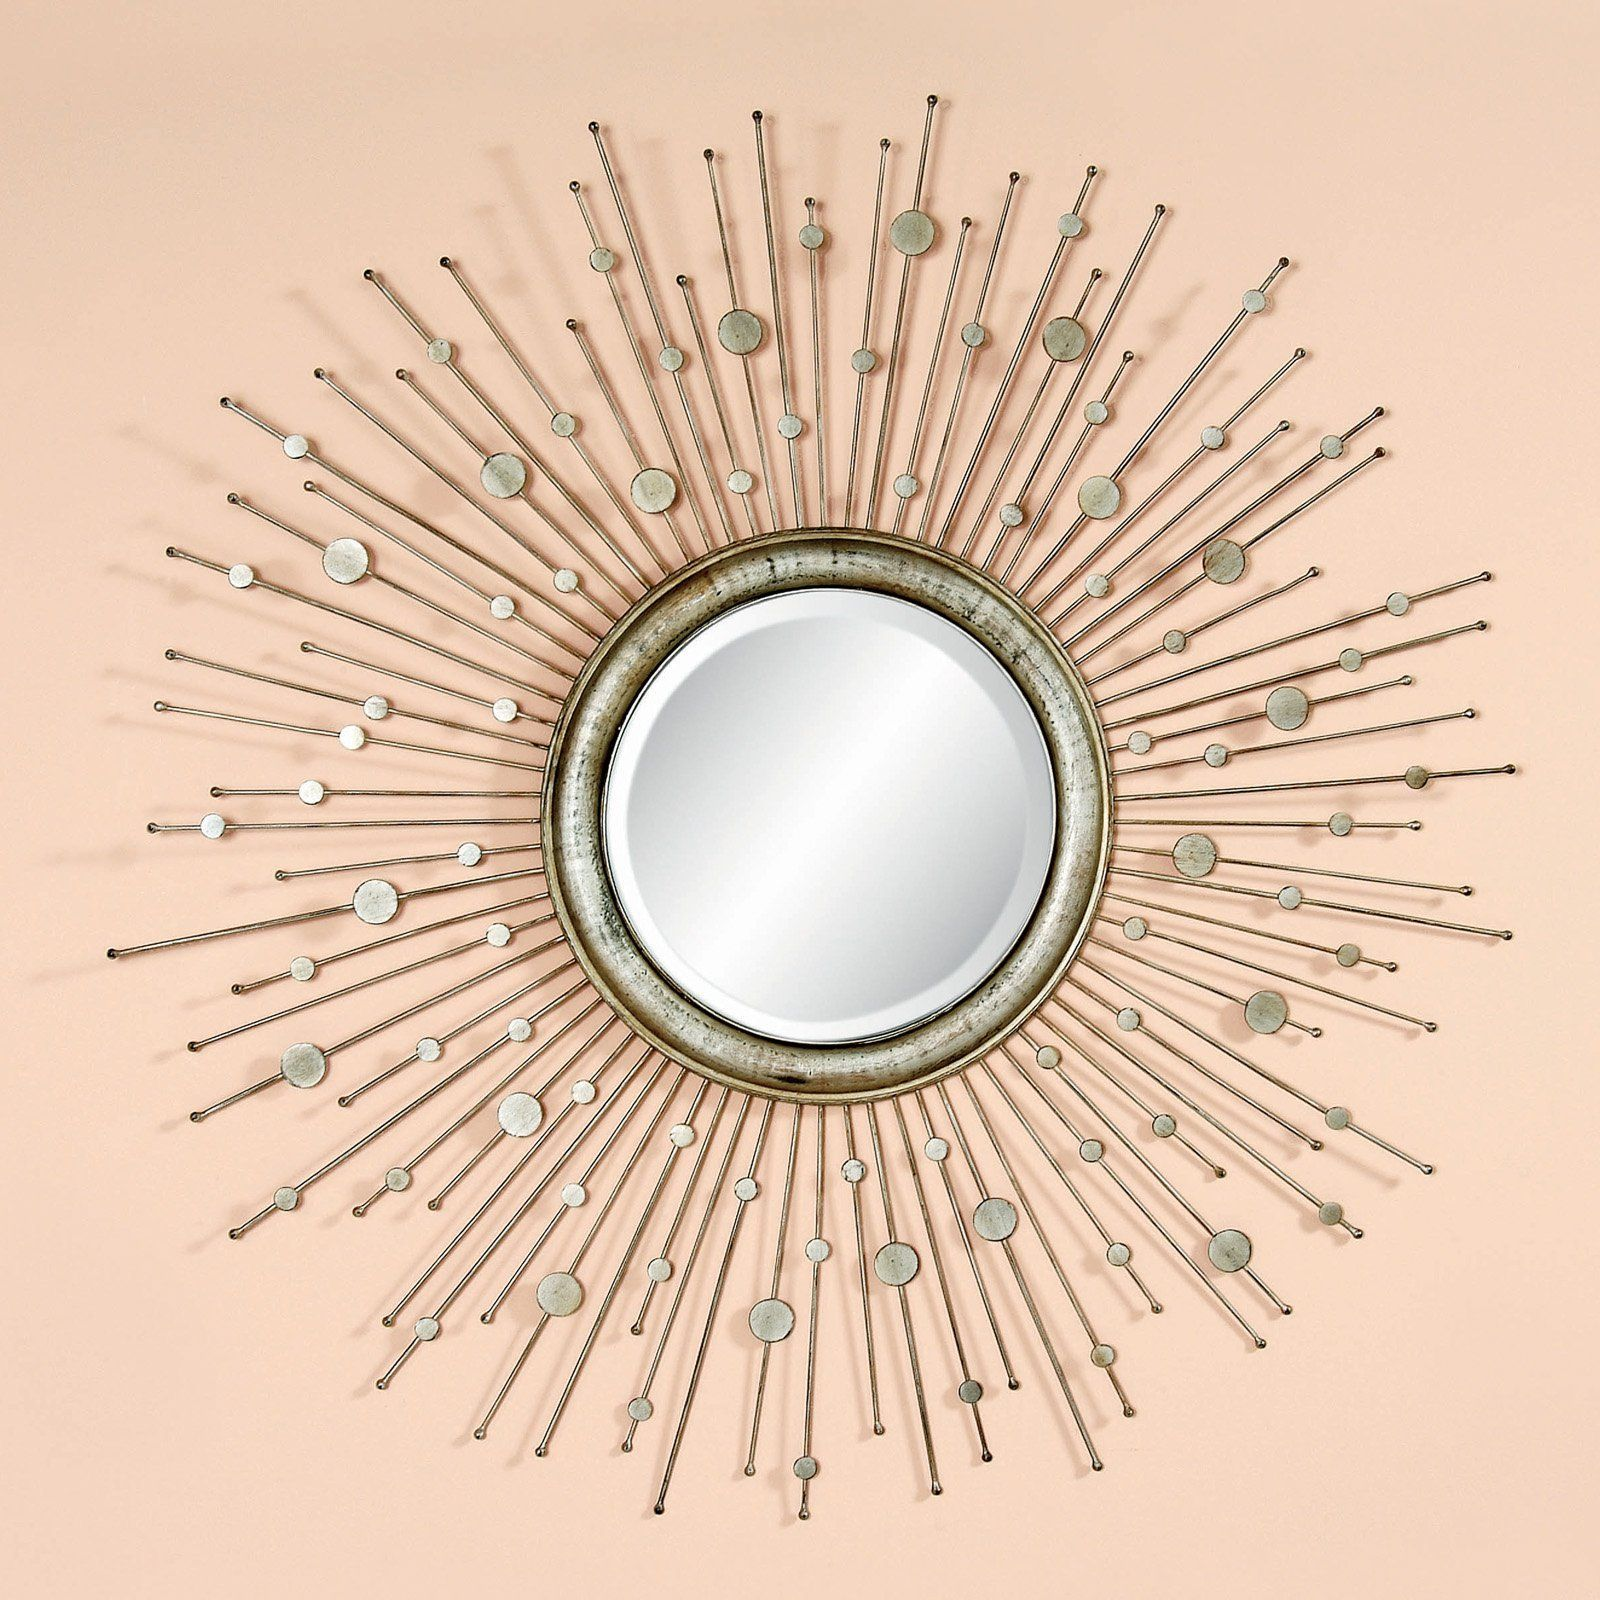 Antique Silver Starburst Decorative Mirror